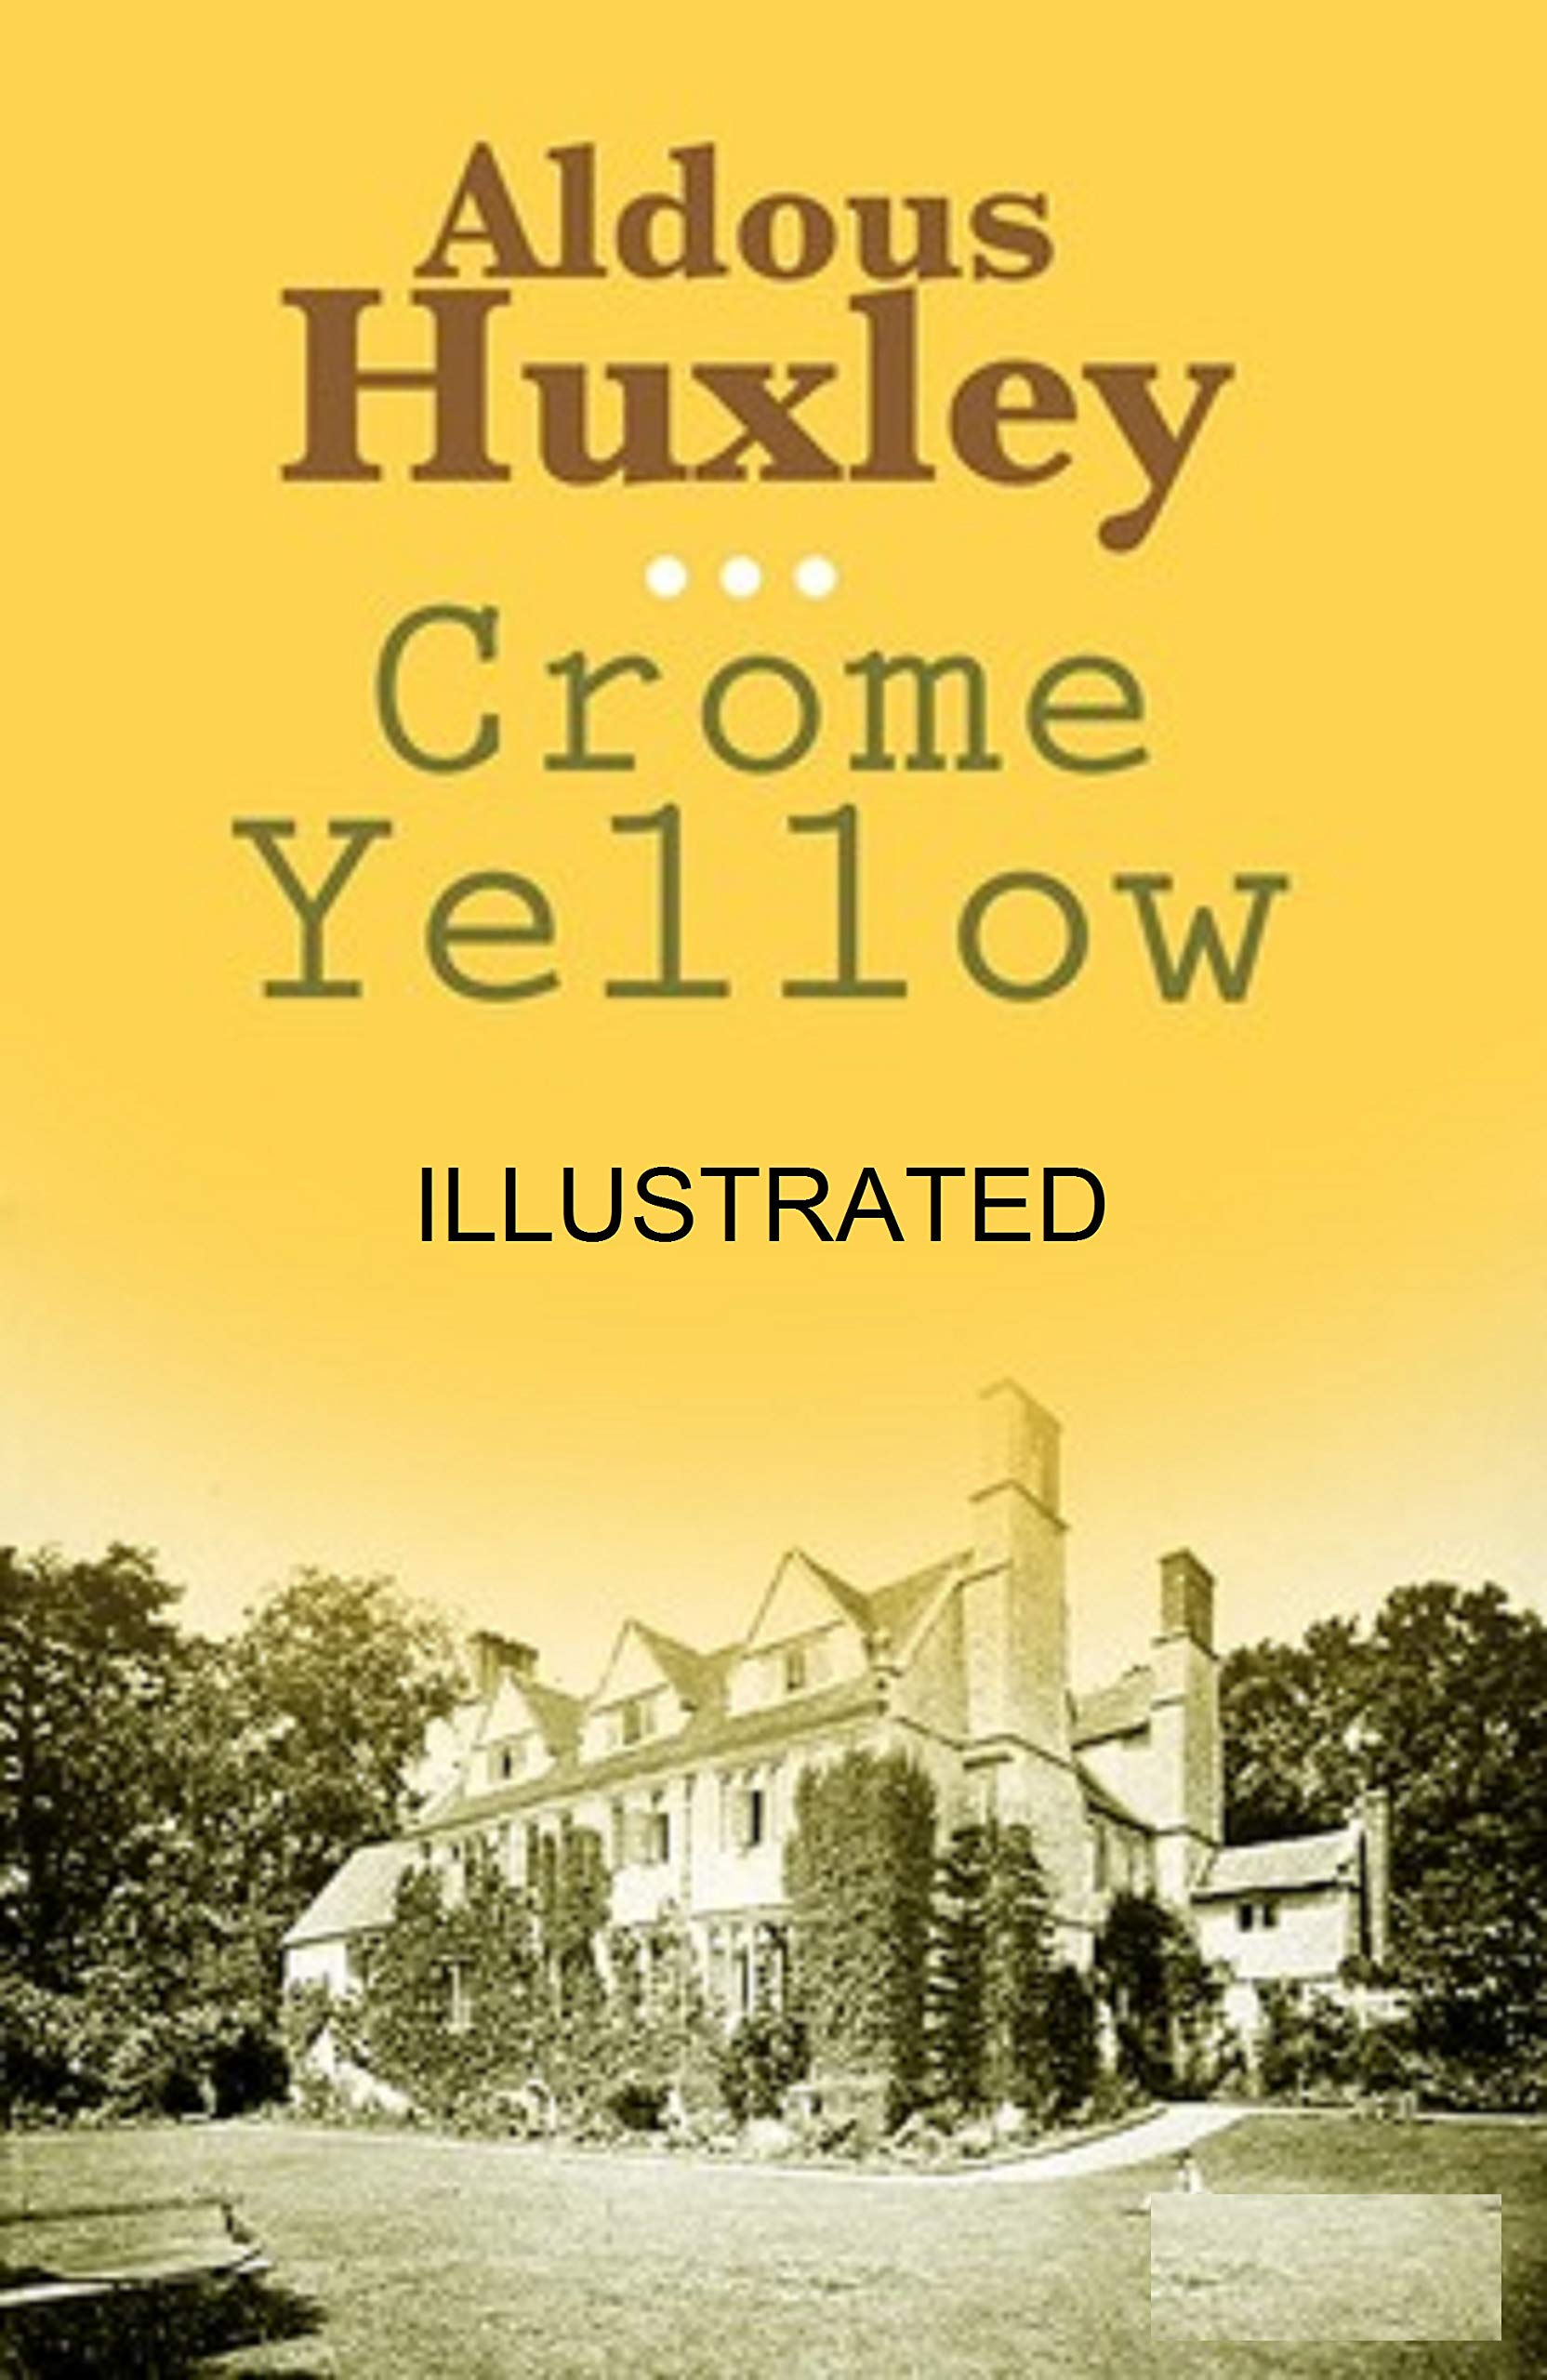 Crome Yellow illustrated